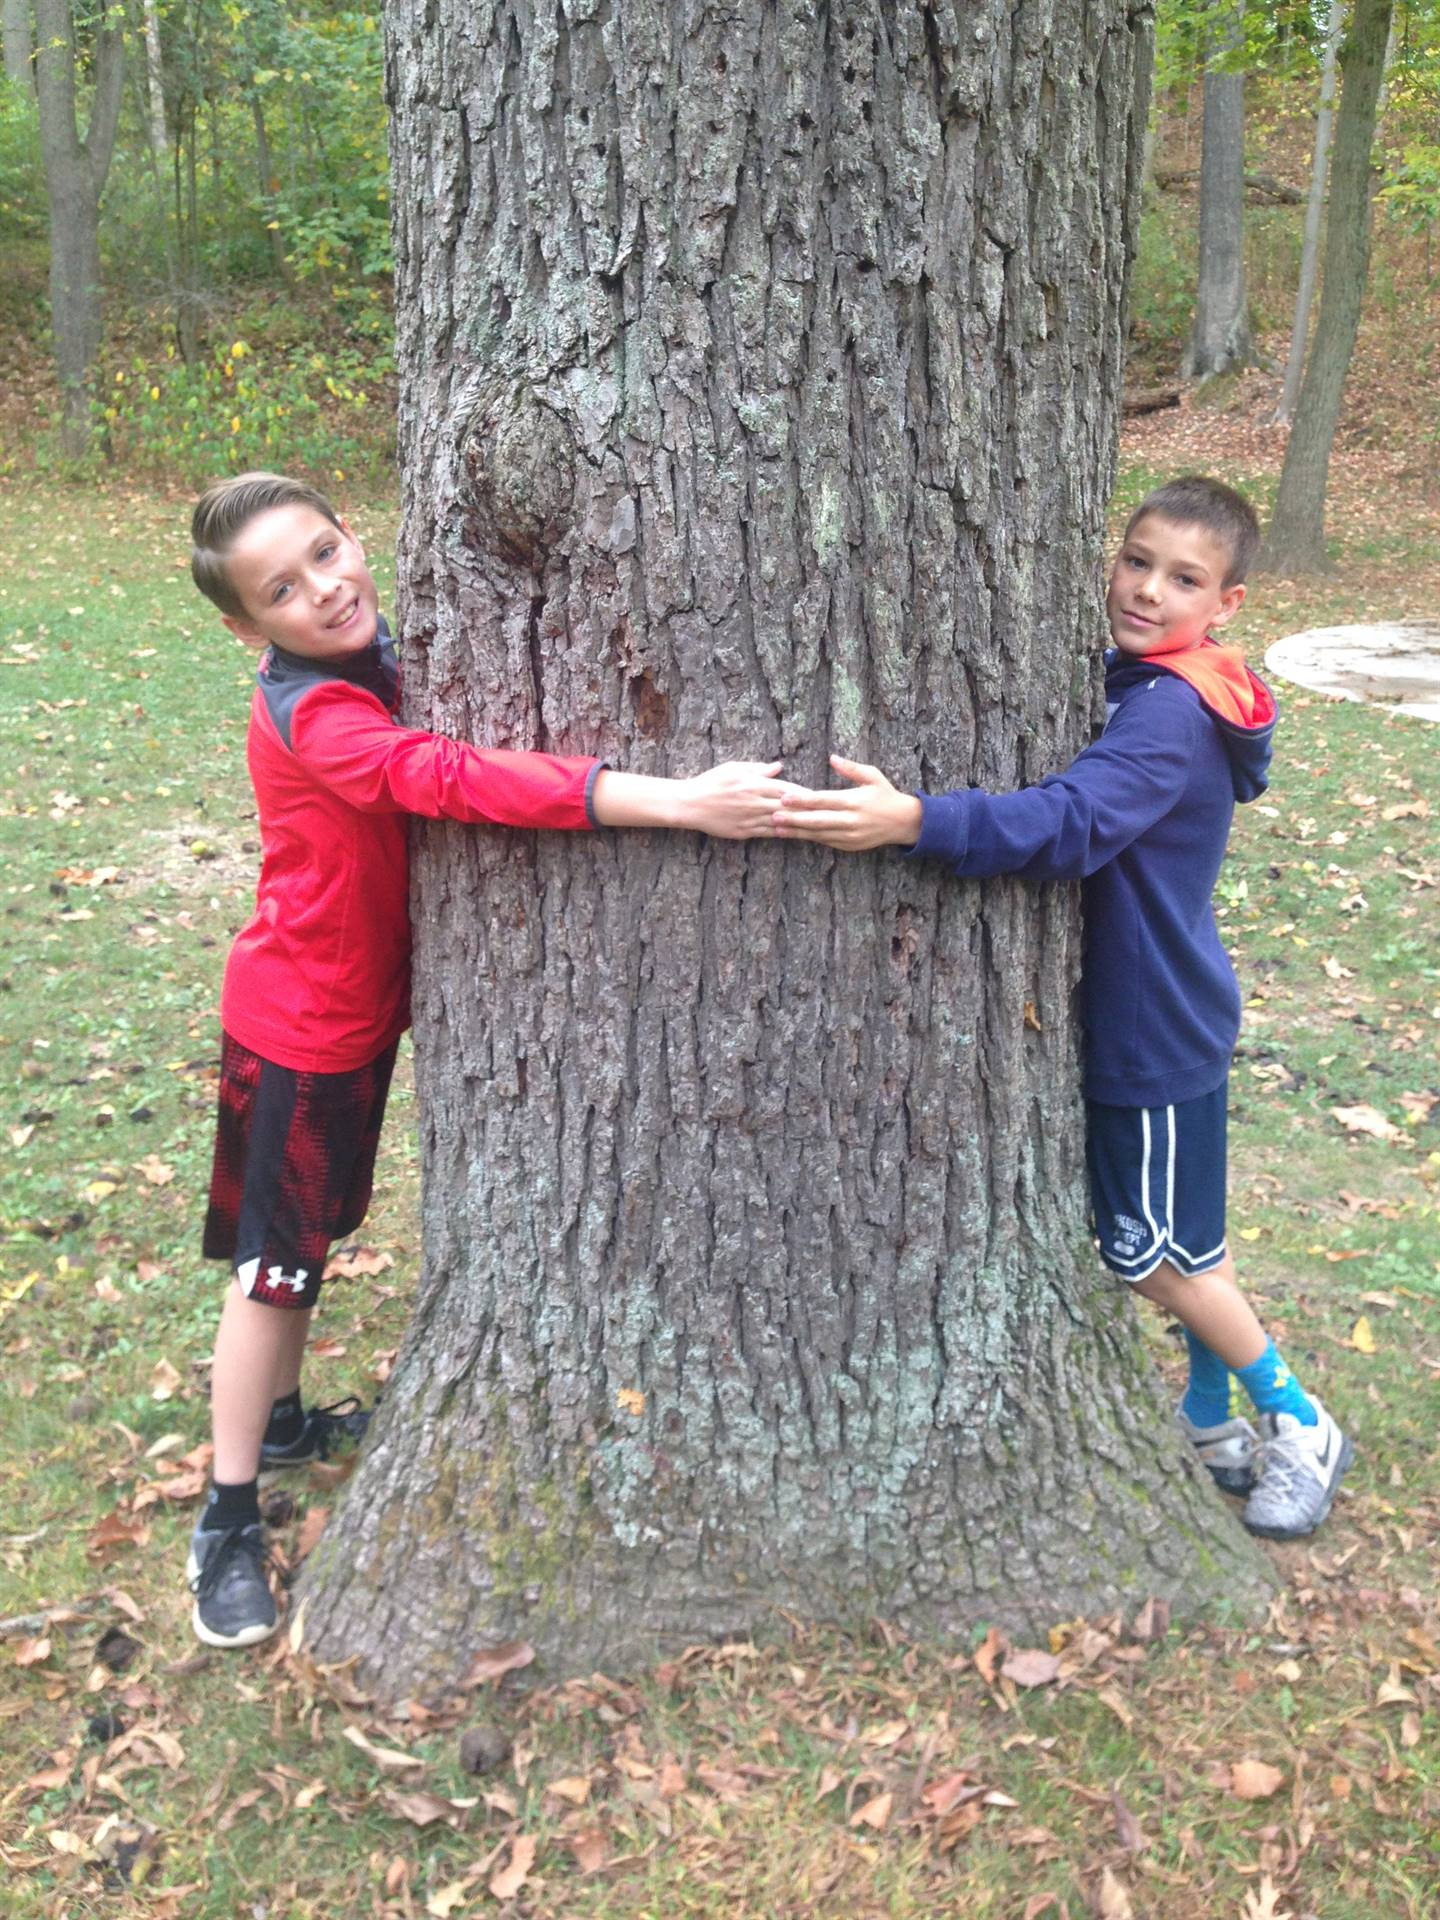 Boys measuring circumference of tree